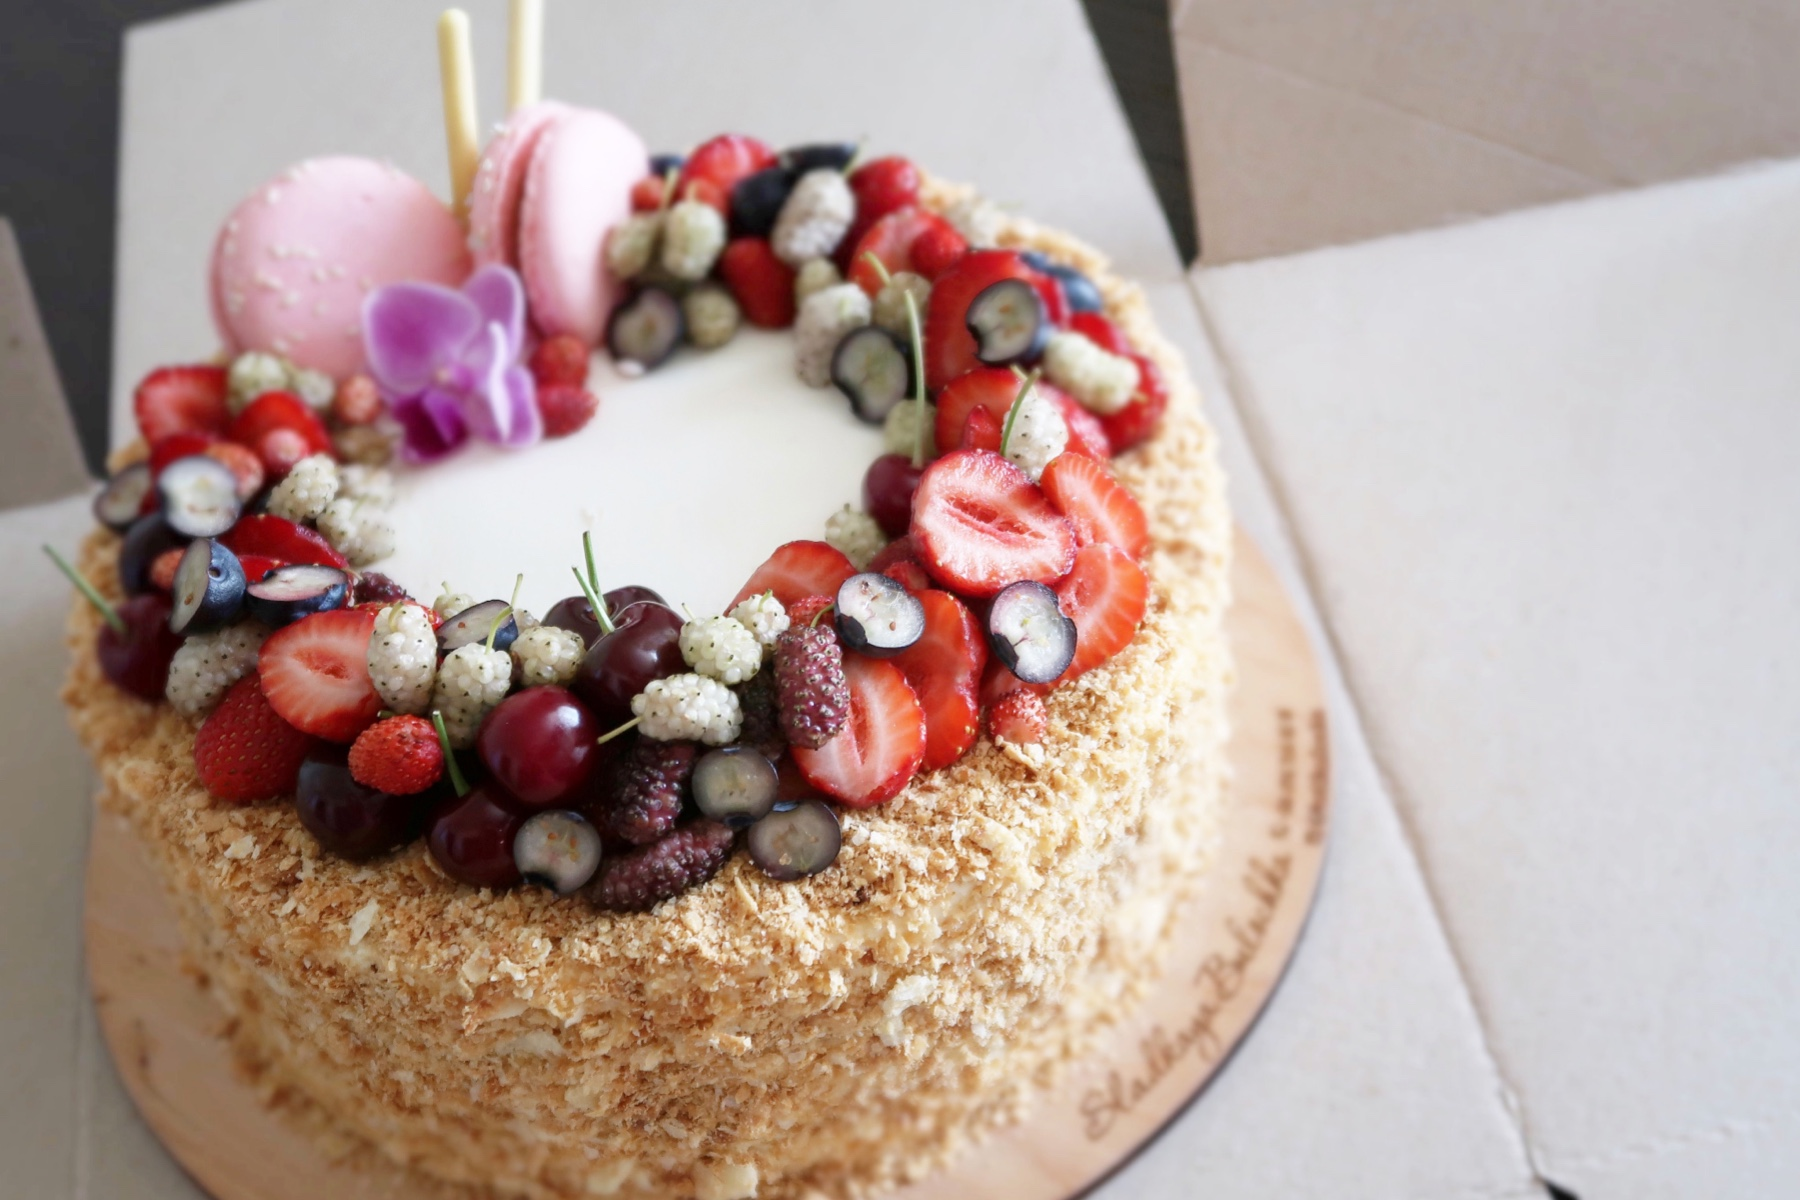 Photo of a cake covered in strawberries, macarons, and other treats